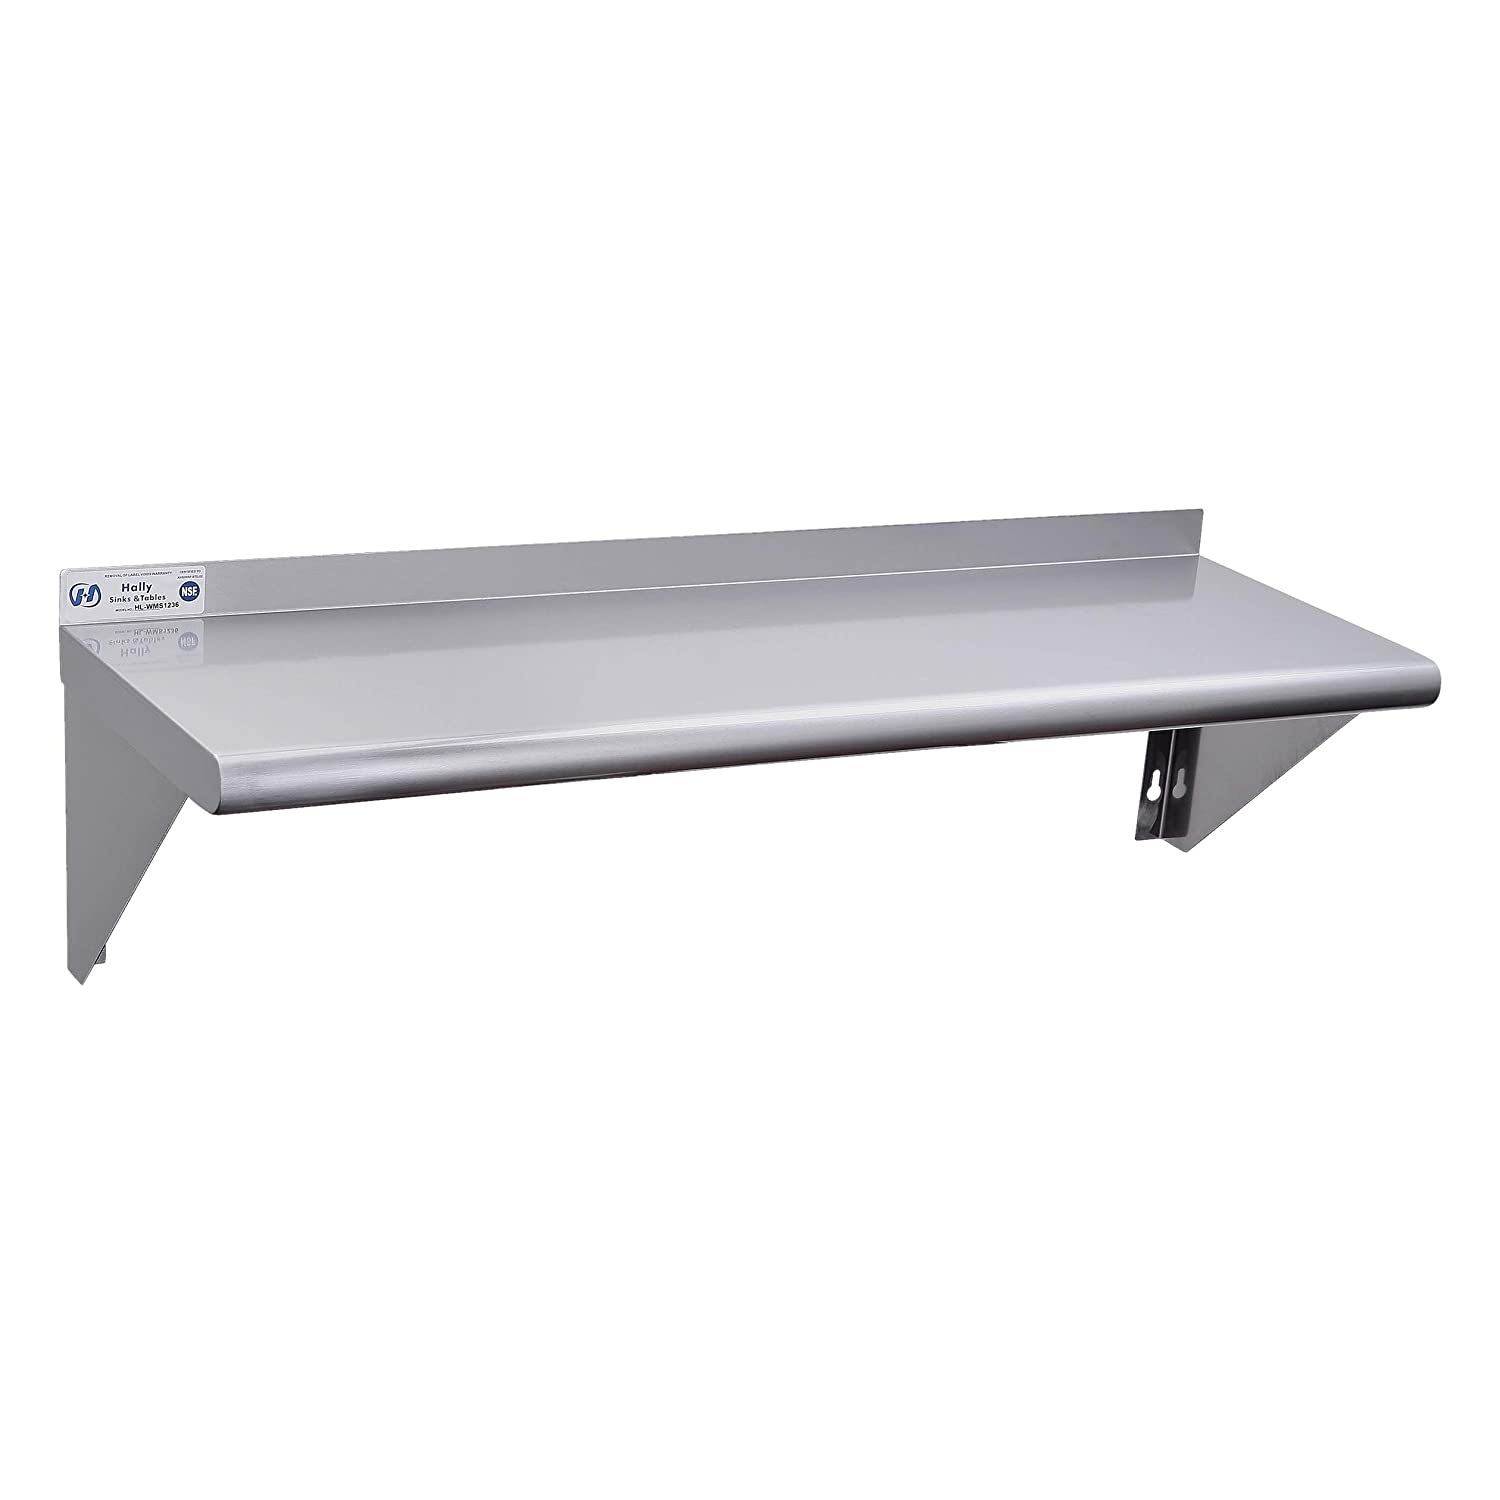 Stainless Steel Shelf 18 x 36 Inches, 350 lb, Commercial NSF Wall Mount Floating Shelving for Restaurant, Kitchen, Home and Hotel